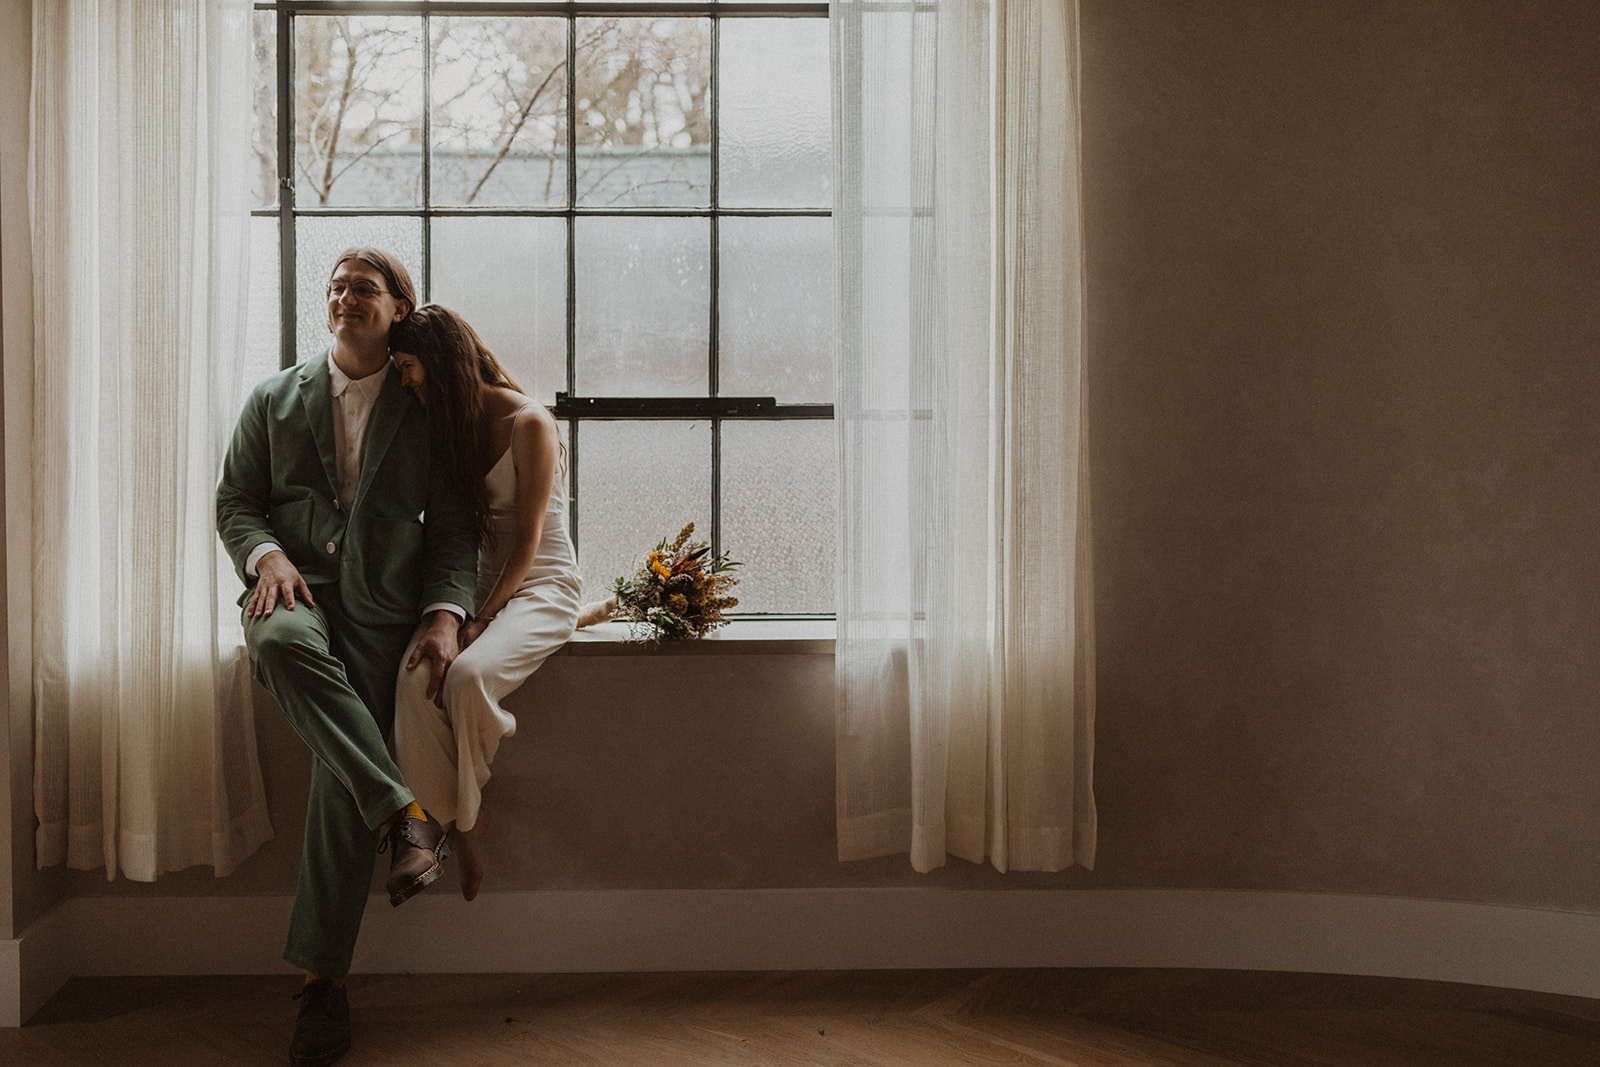 Aaron anna bloomington elopement KFK 234 of 343